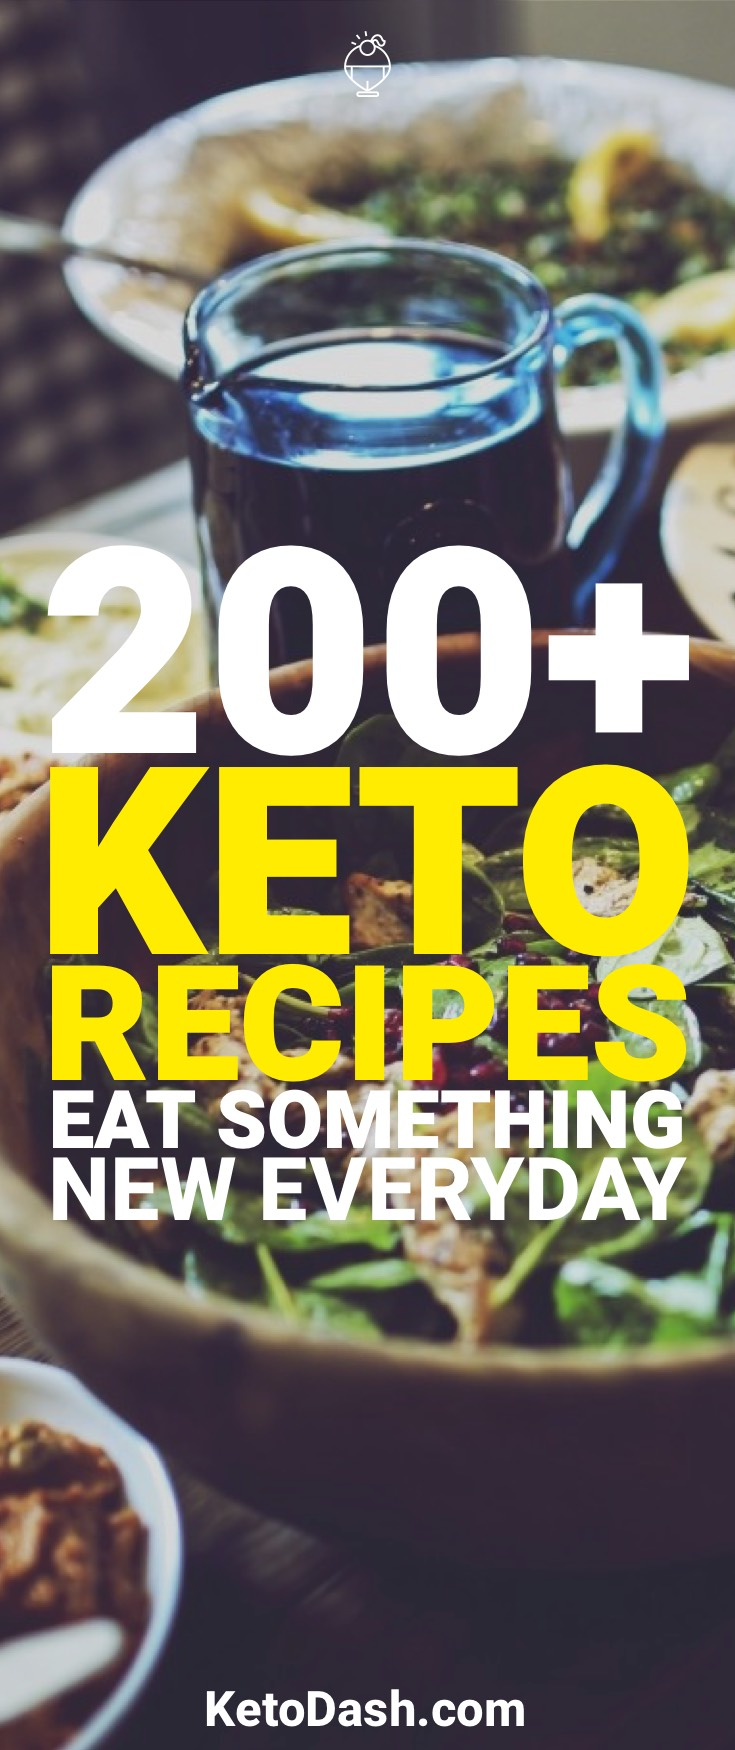 200+ Keto Recipes to Help You Lose Weight